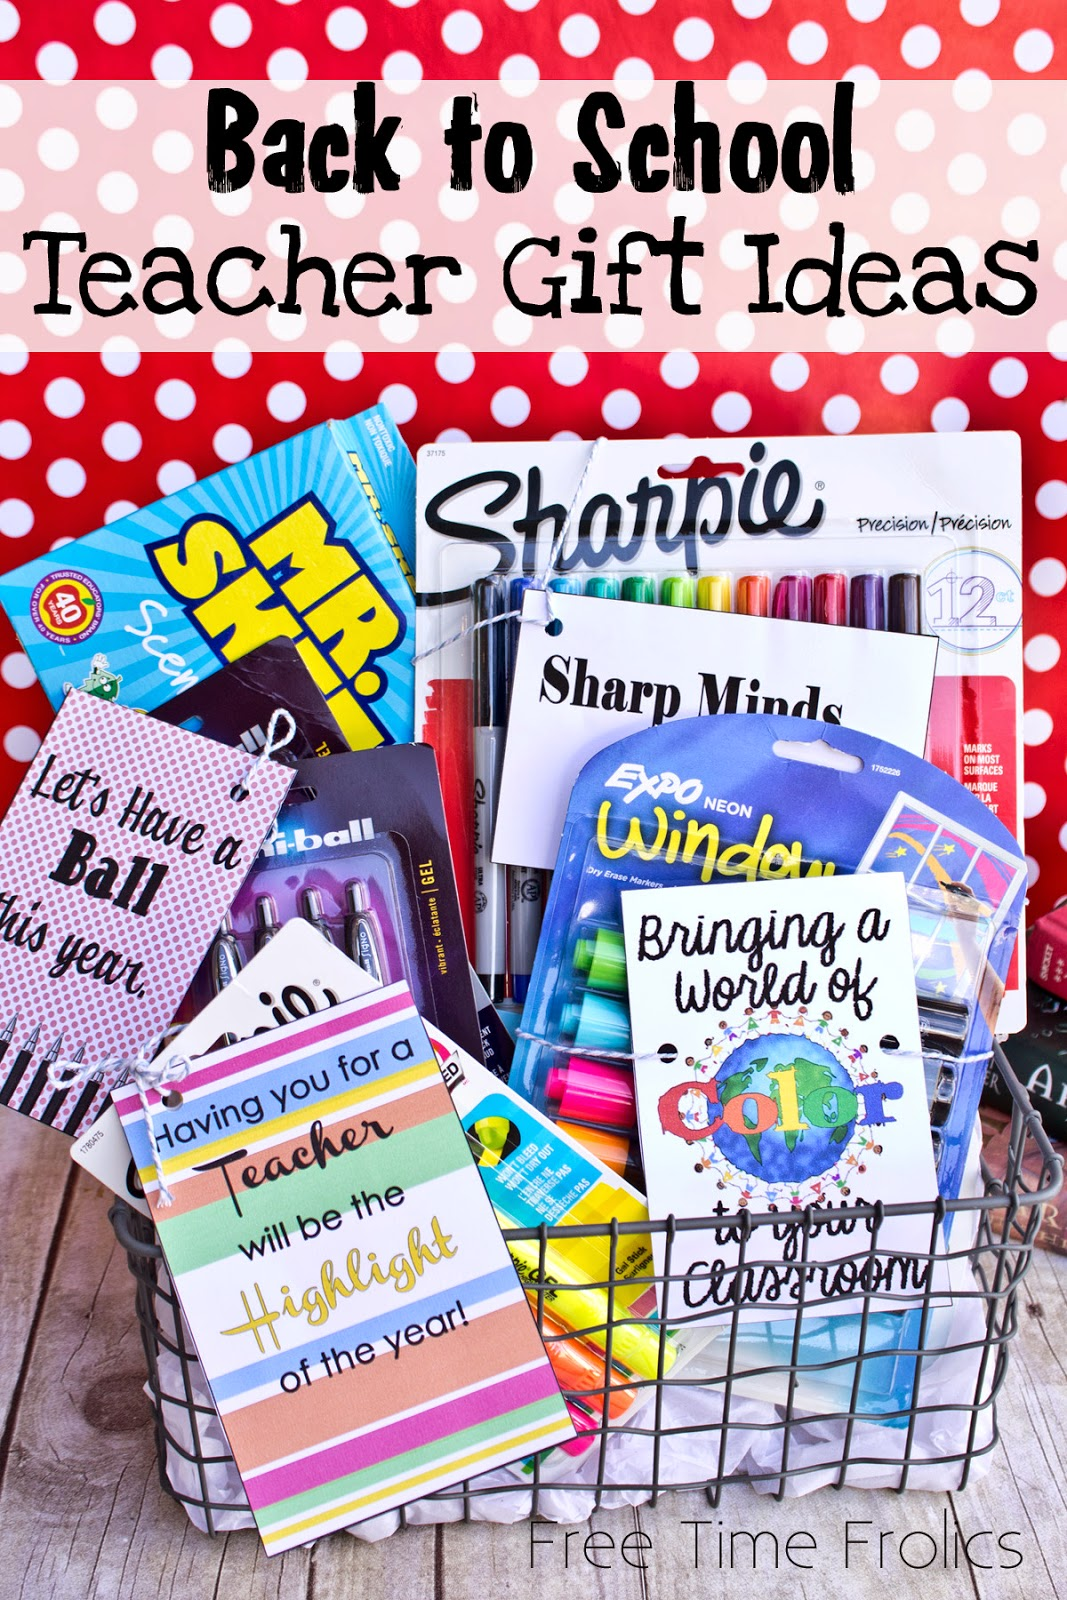 Teacher Gift Ideas www.freetimefrolics.com #inspirestudents #teacherschangelives